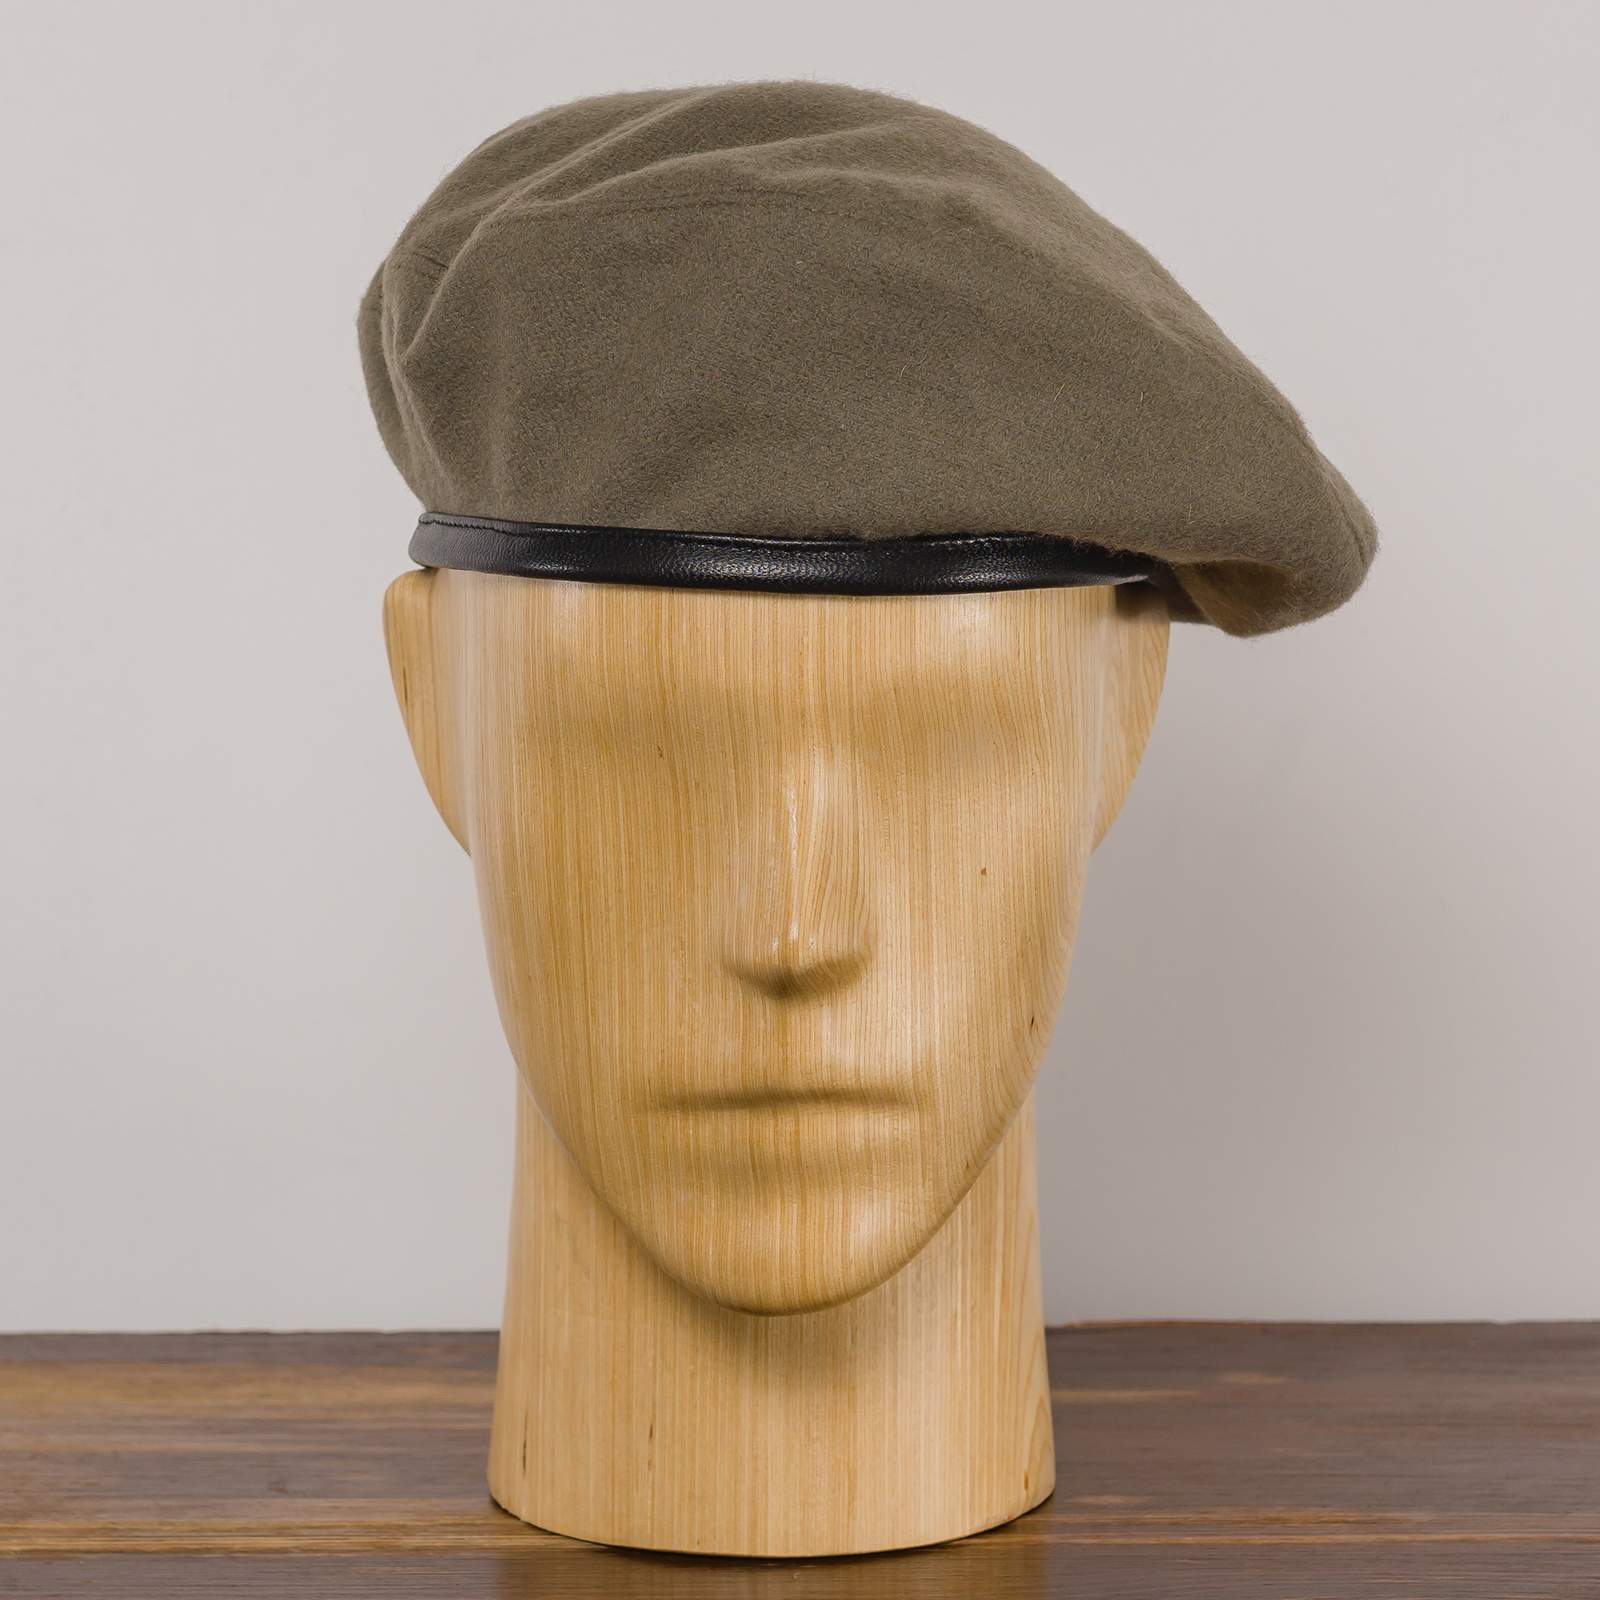 Wool cloth parachute brigade historical replica beret military Polish army sewn men's boy scout reservist che beatnik